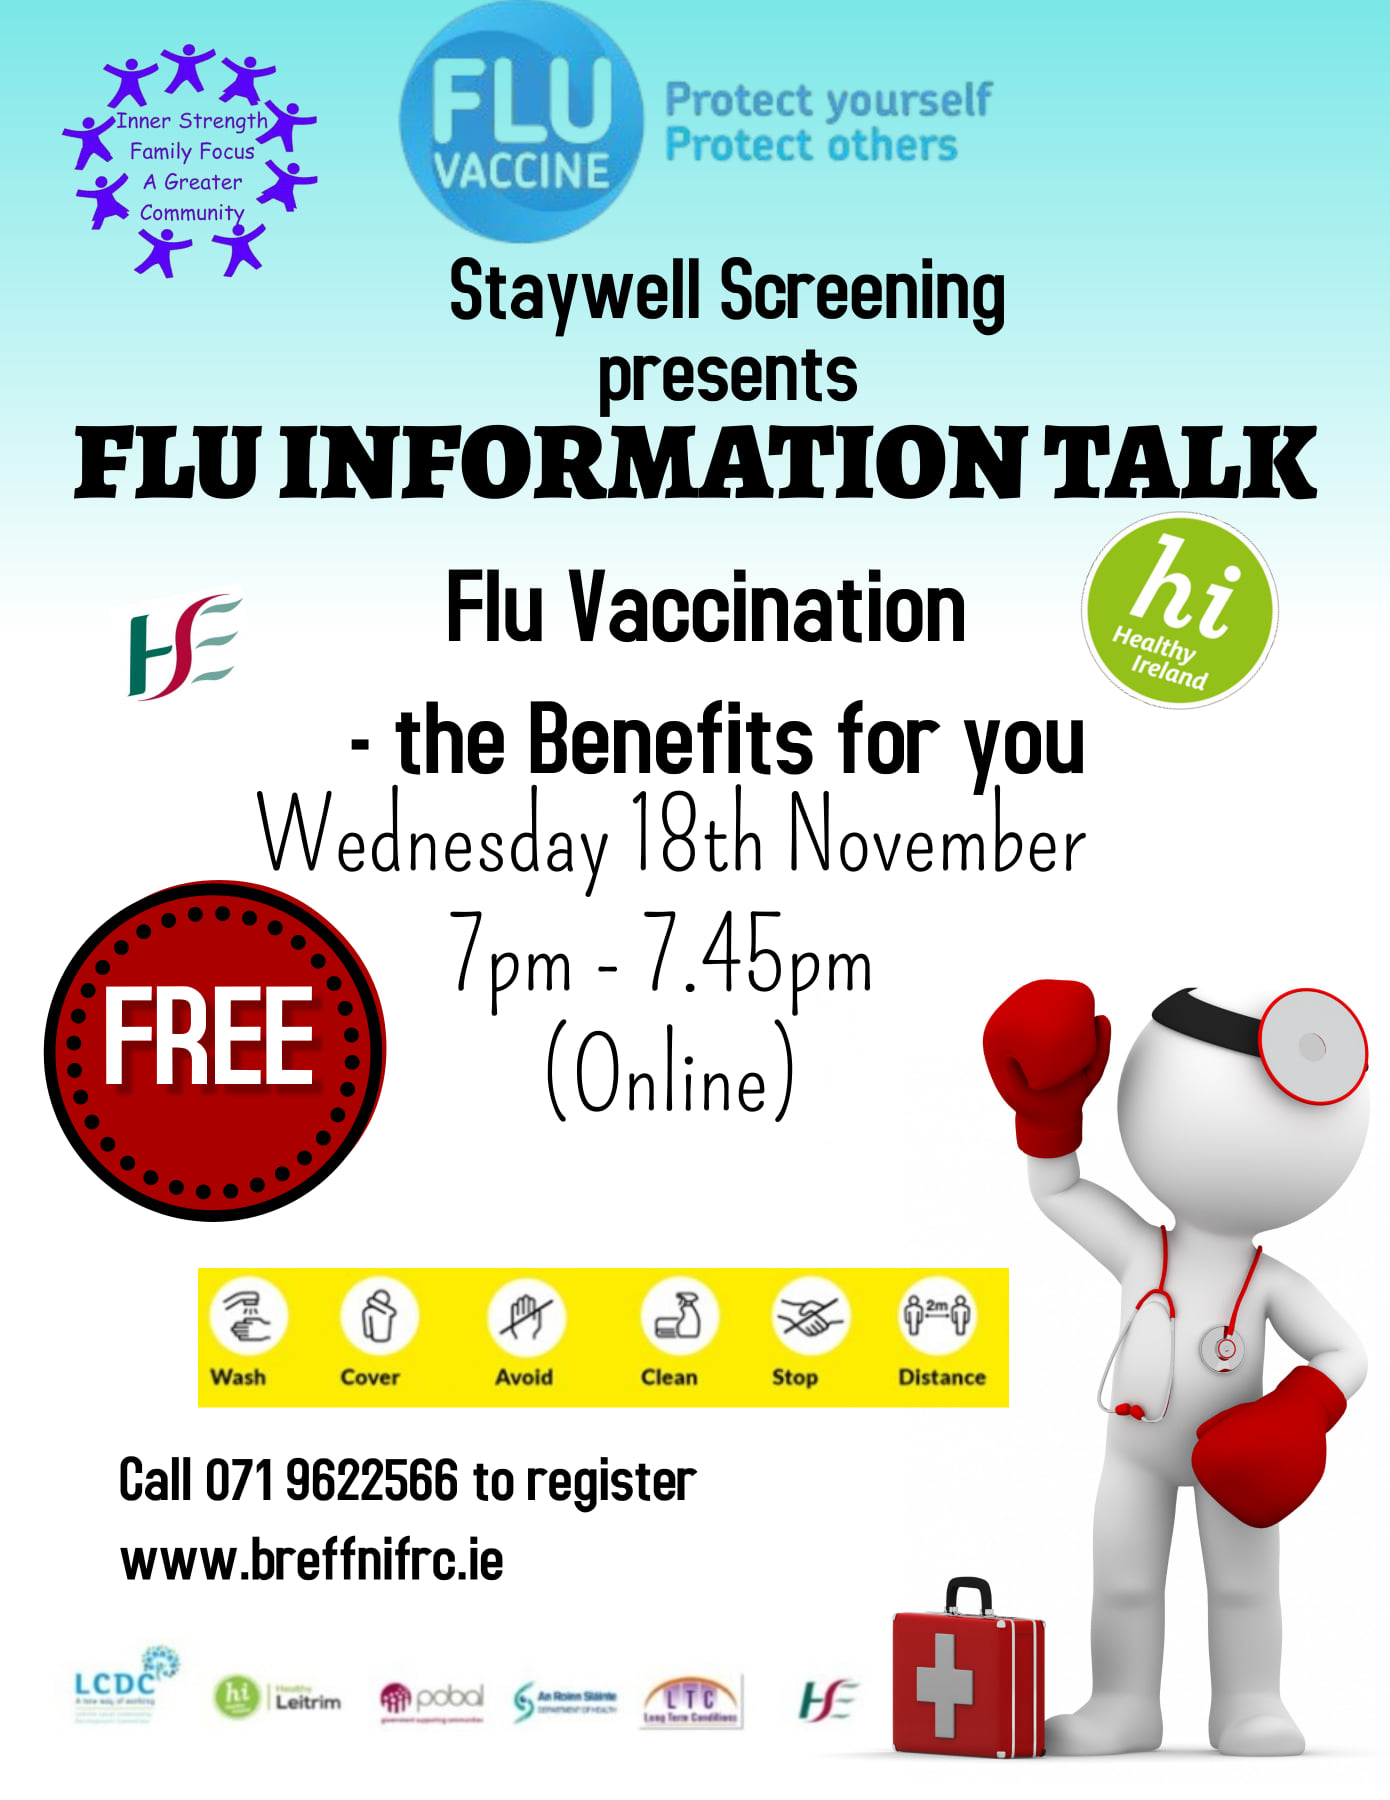 MyCarrick Event - Breffni Family Resource Centre - Flu Information Talk